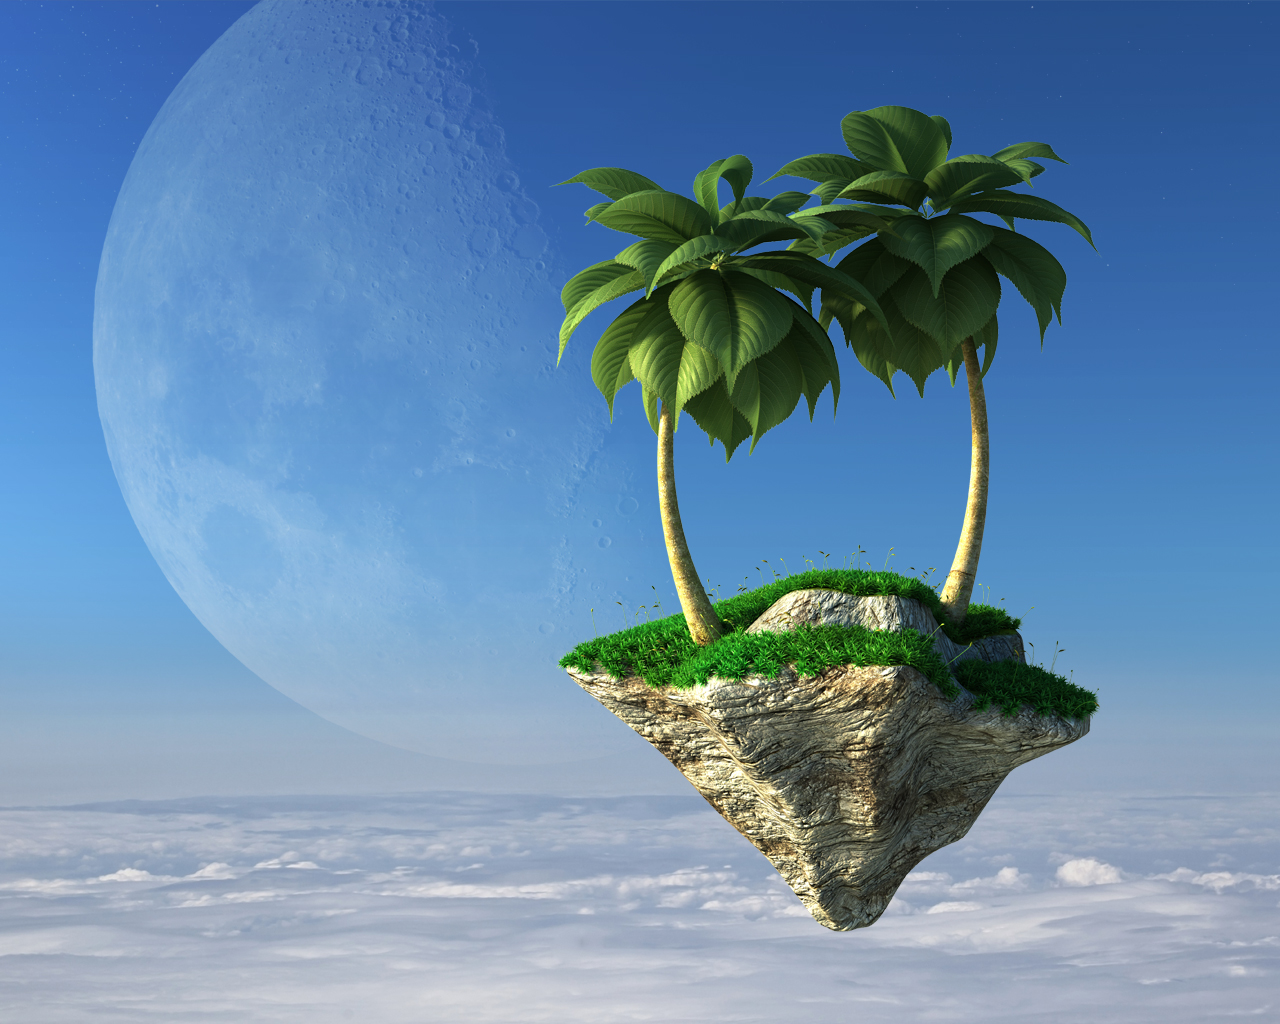 3D palm trees on flying stone island on a background of clouds and a giant moon